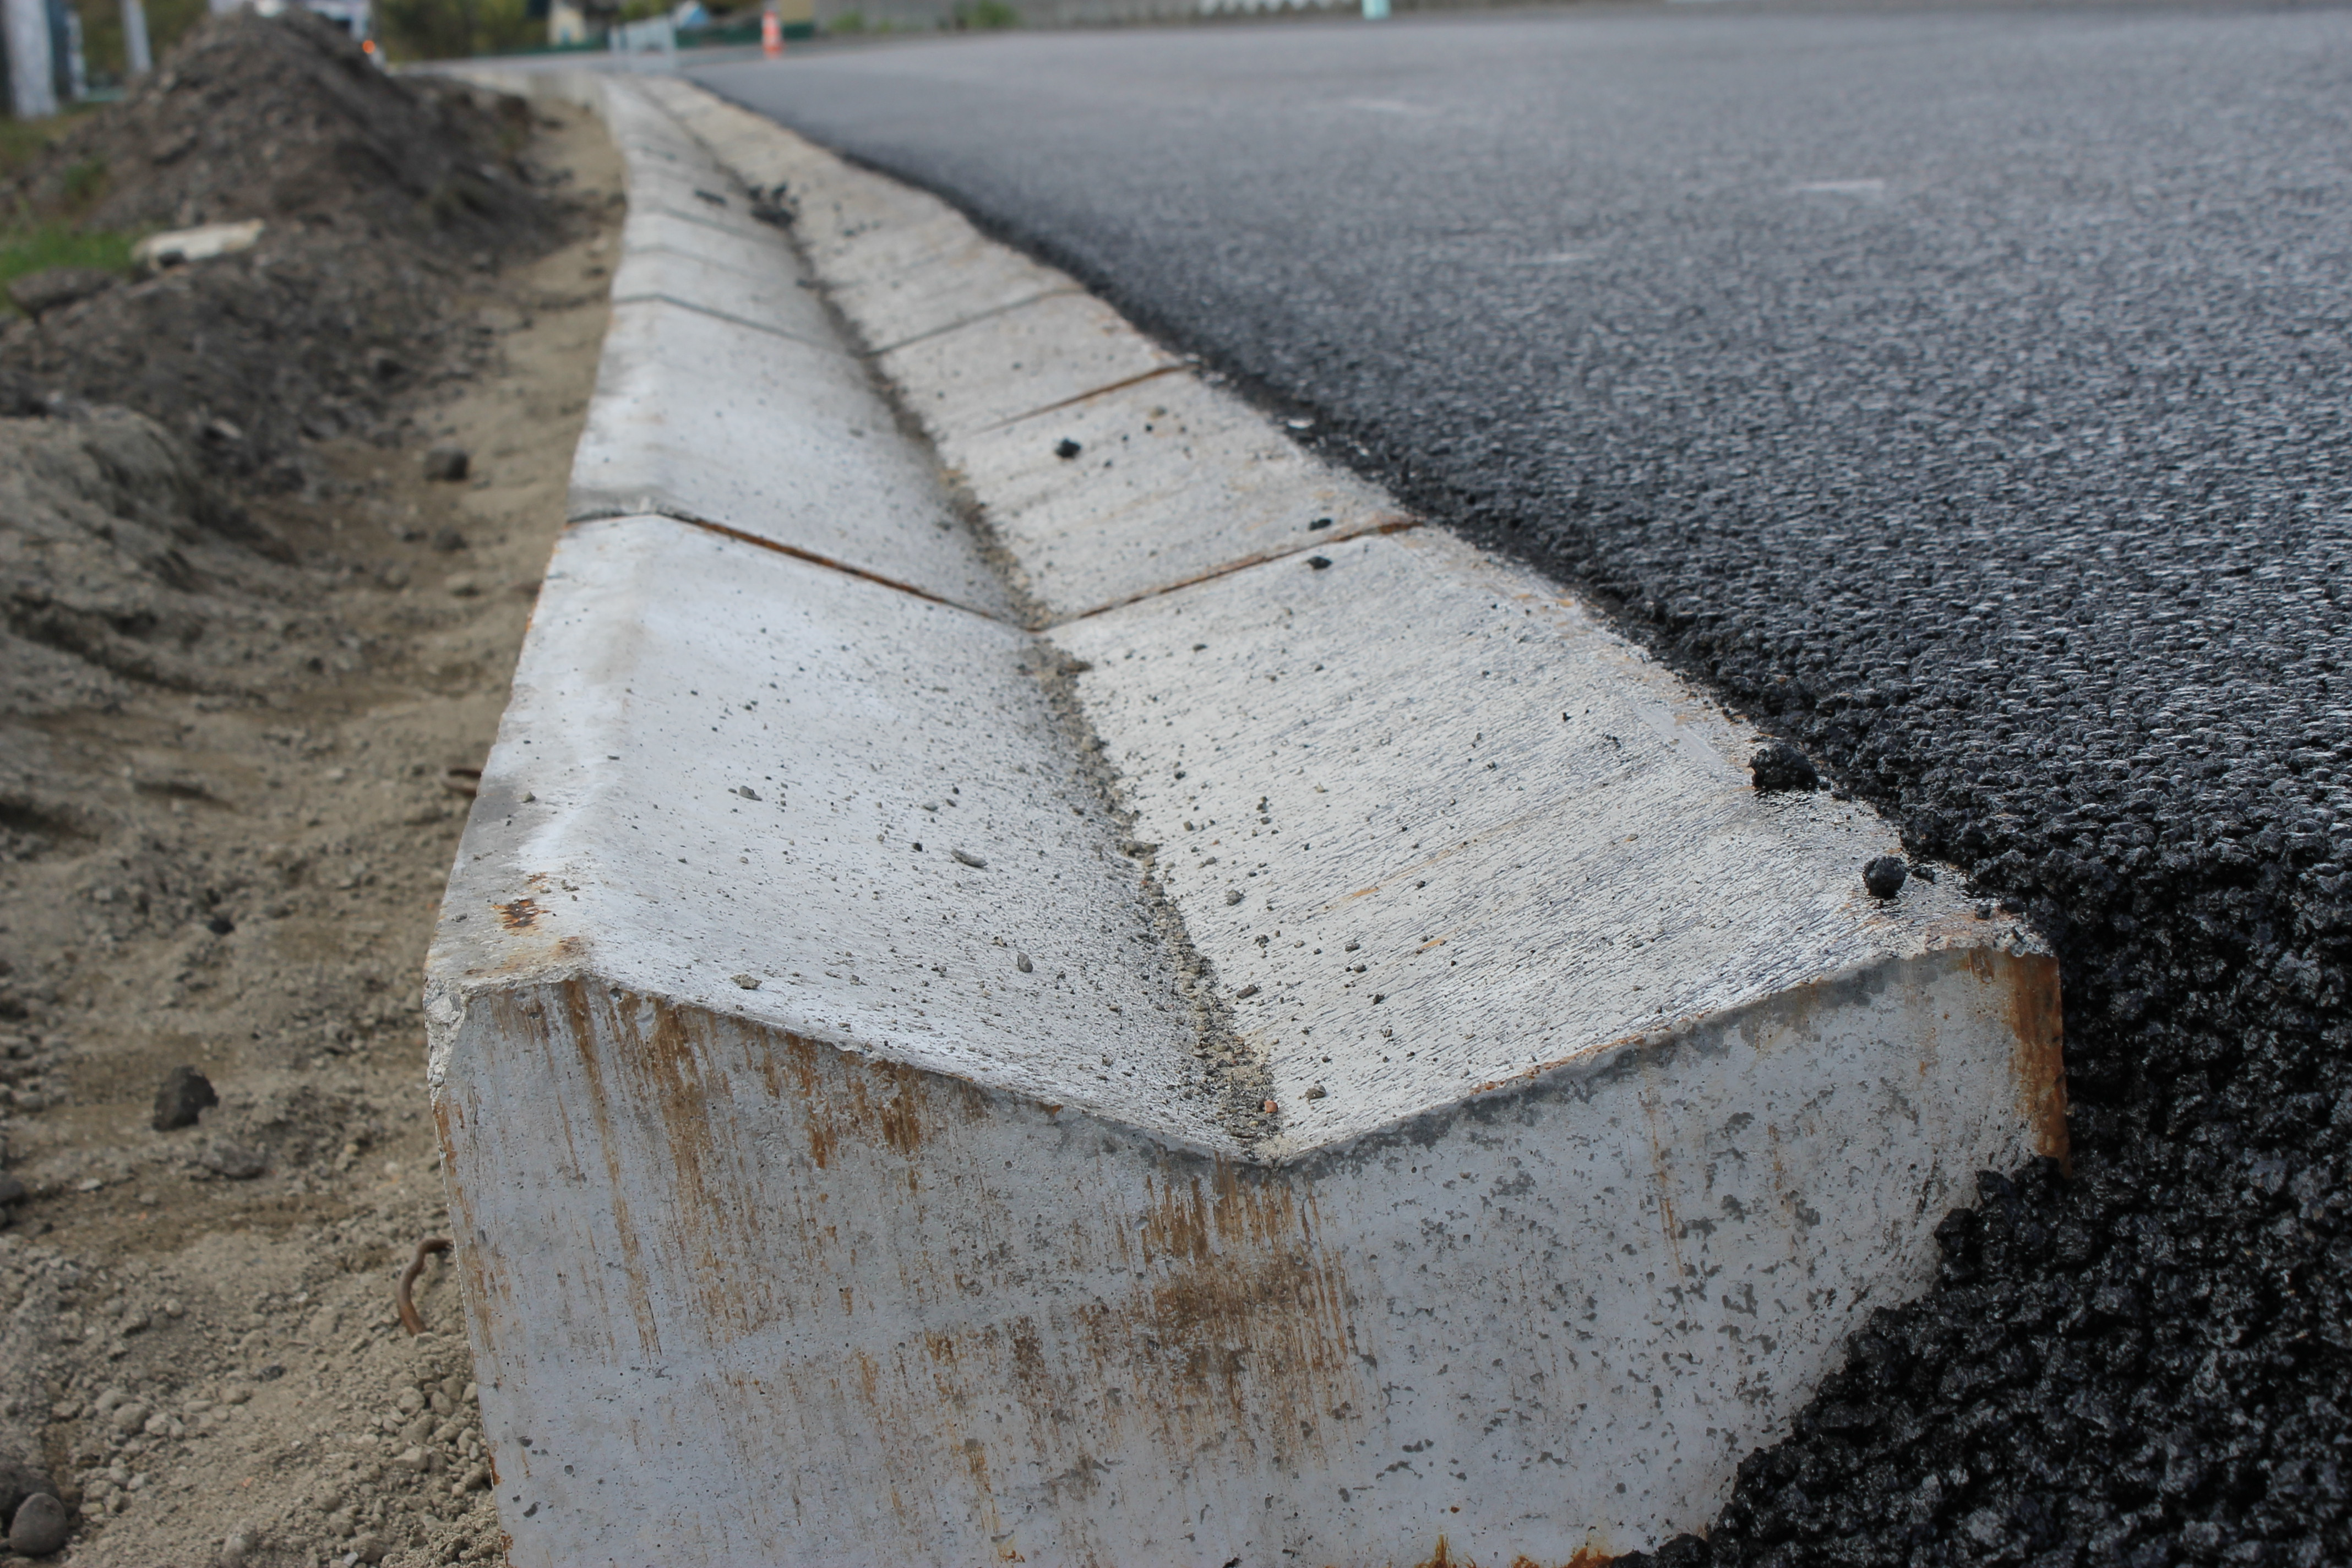 Road repairs are finishing in Zhyvachiv village